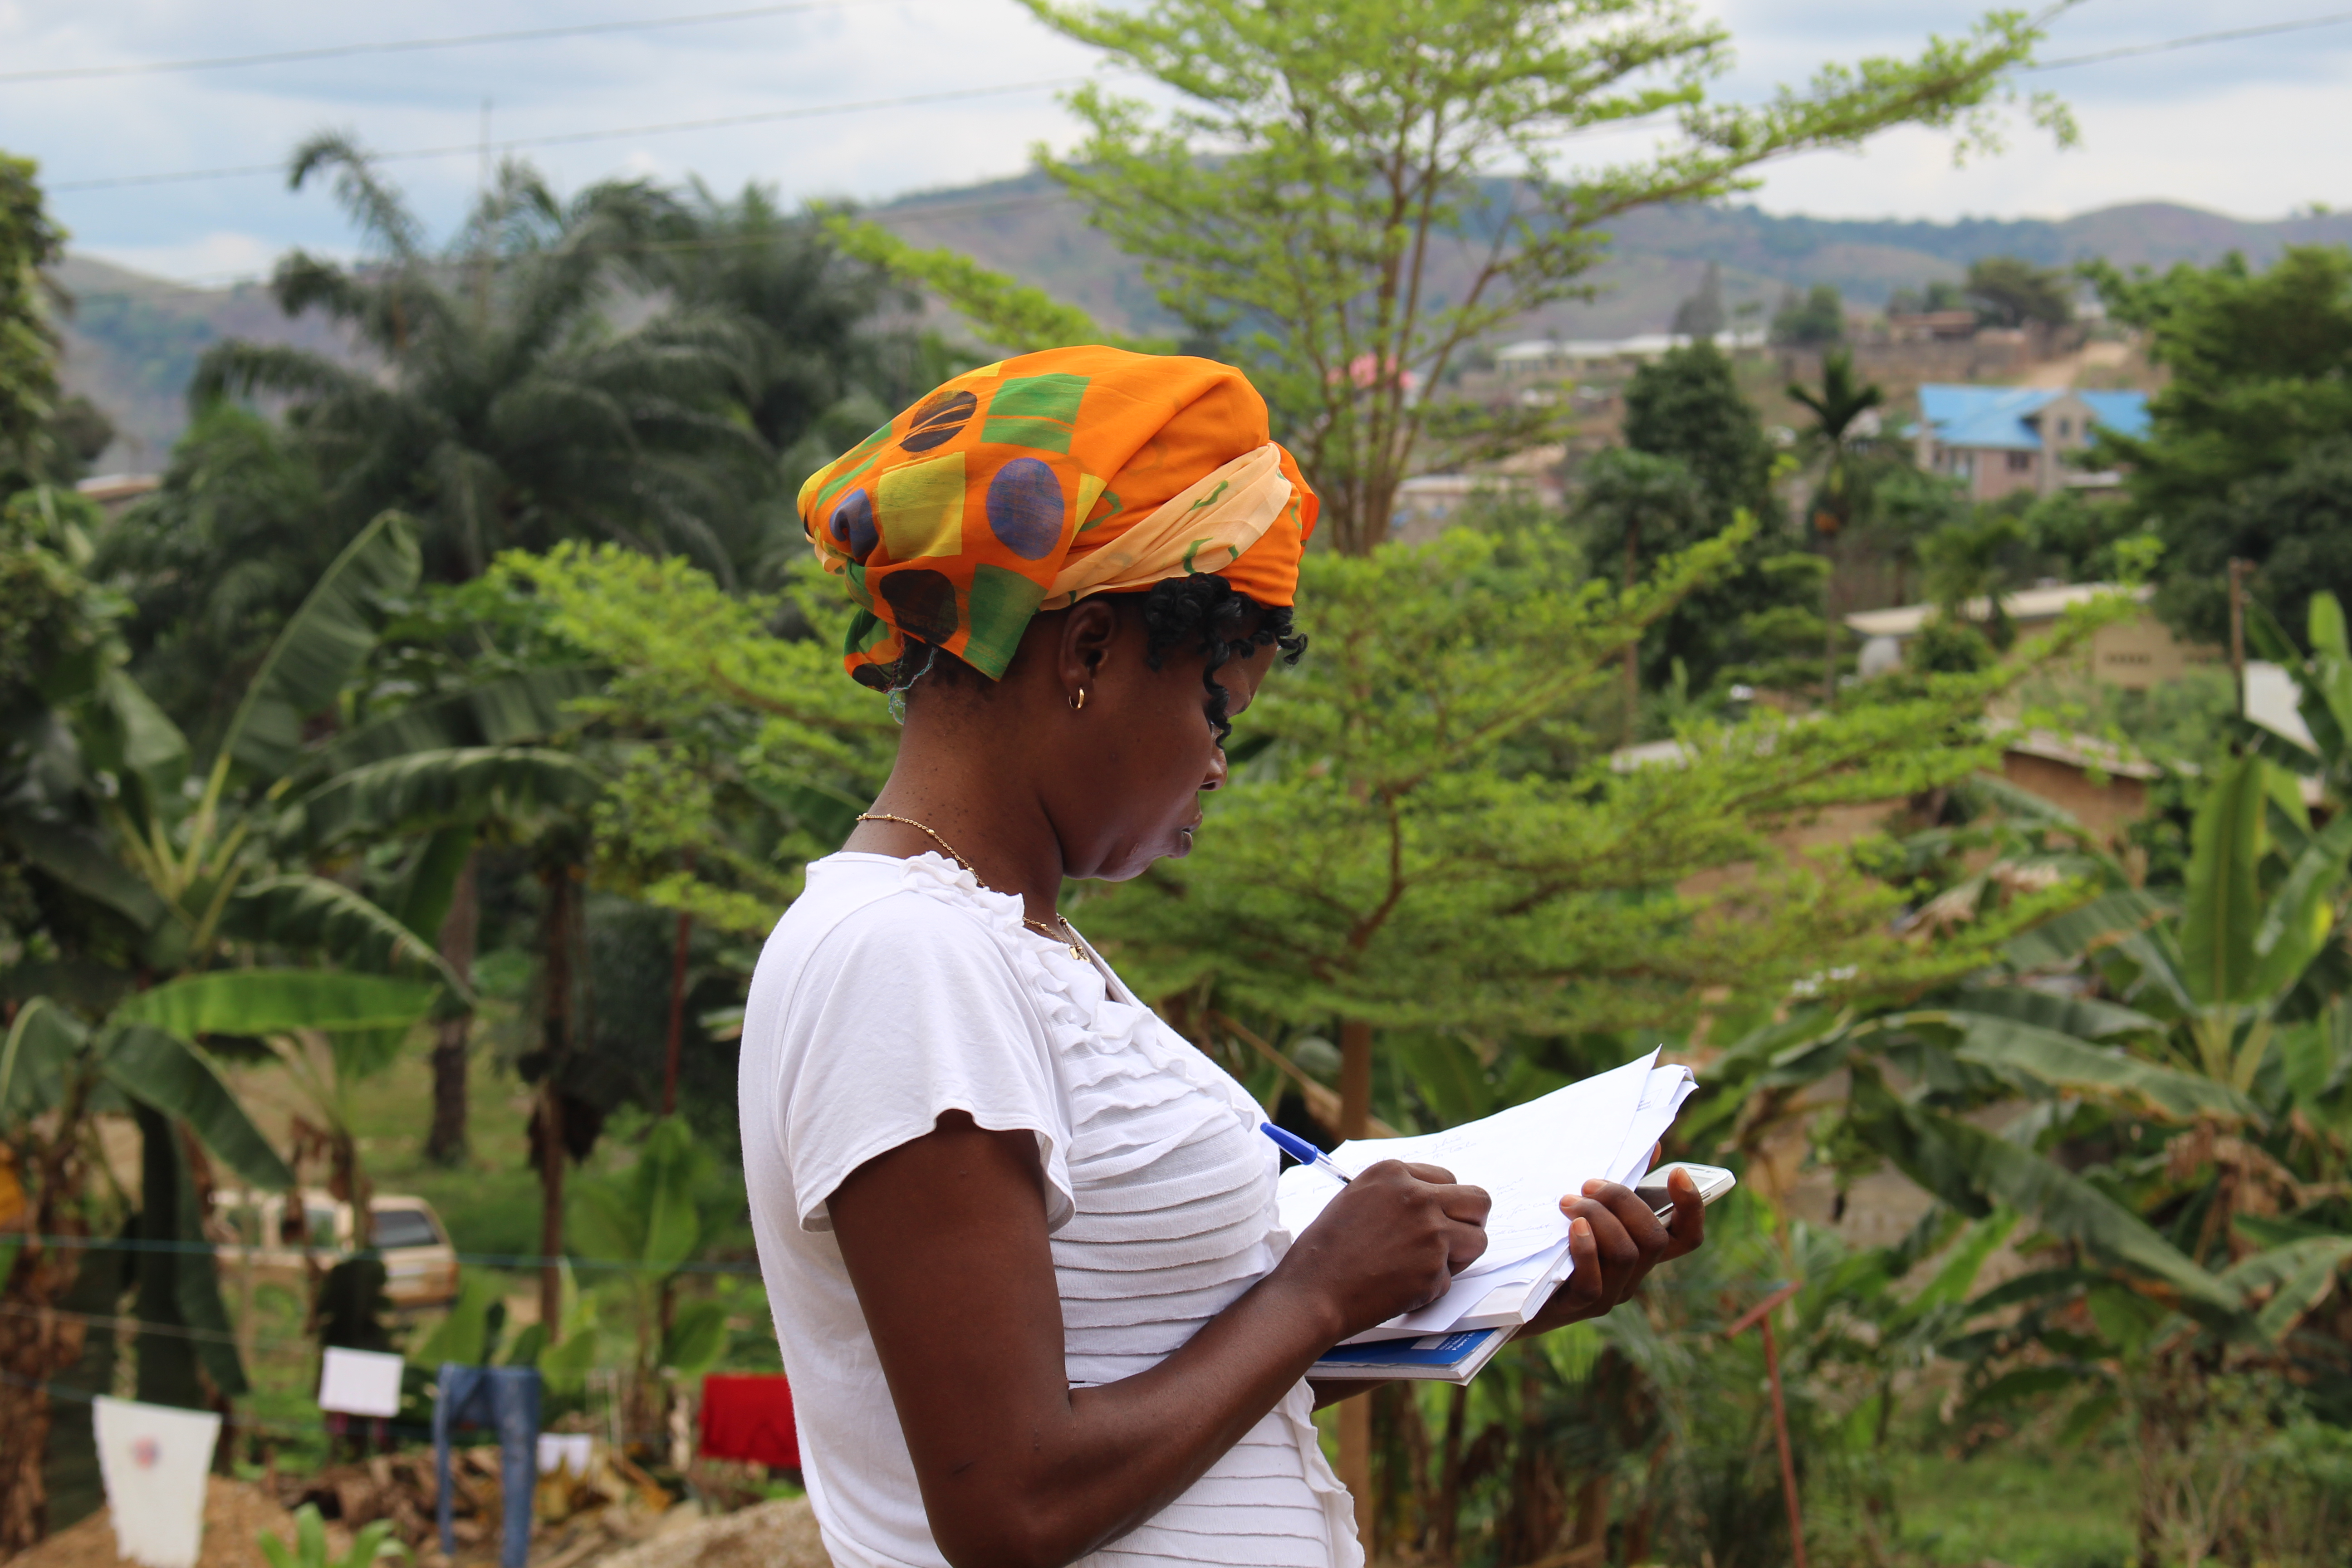 A resident enumerator in Congo (Kinshasa), prepares for another round of data collection for PMA2020, a mobile technology-based survey project that supports routine, rapid-turnaround, high quality data on family planning and other health indicators. © 2015 PMA2020/Shani Turke, Courtesy of Photoshare